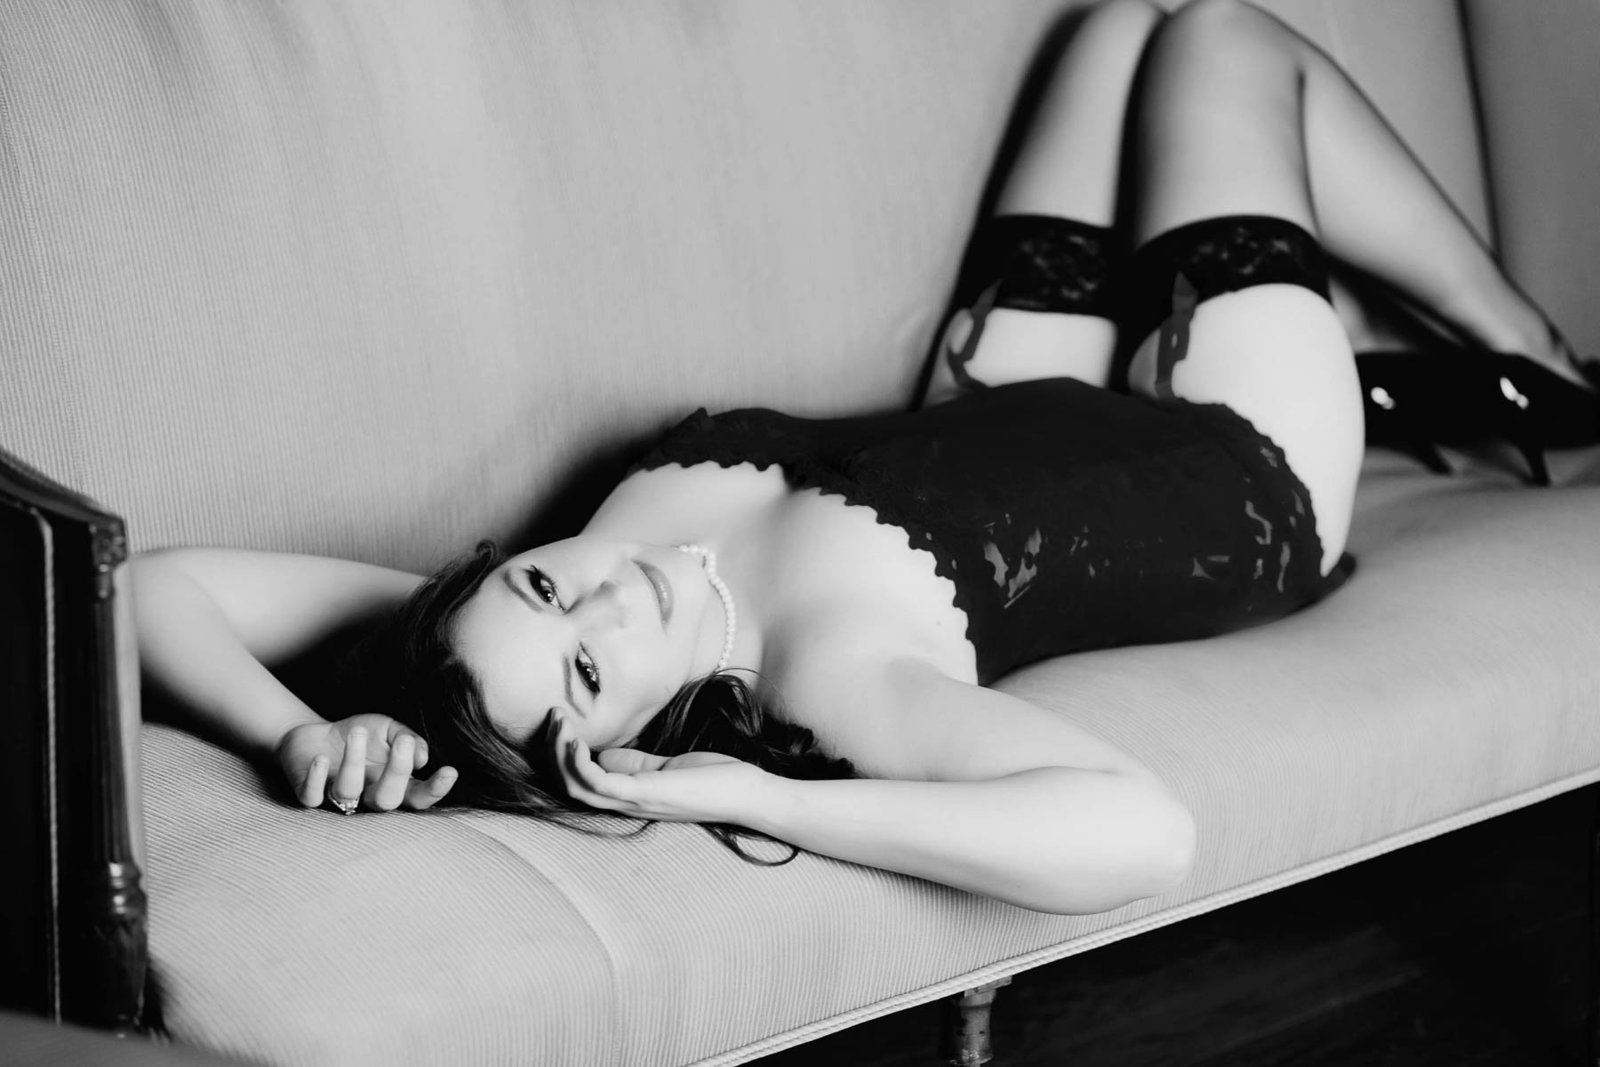 Ms M lays on vintage sofa in her red corset, garter belt and black stockings, Boudoir Photography, Charleston, SC